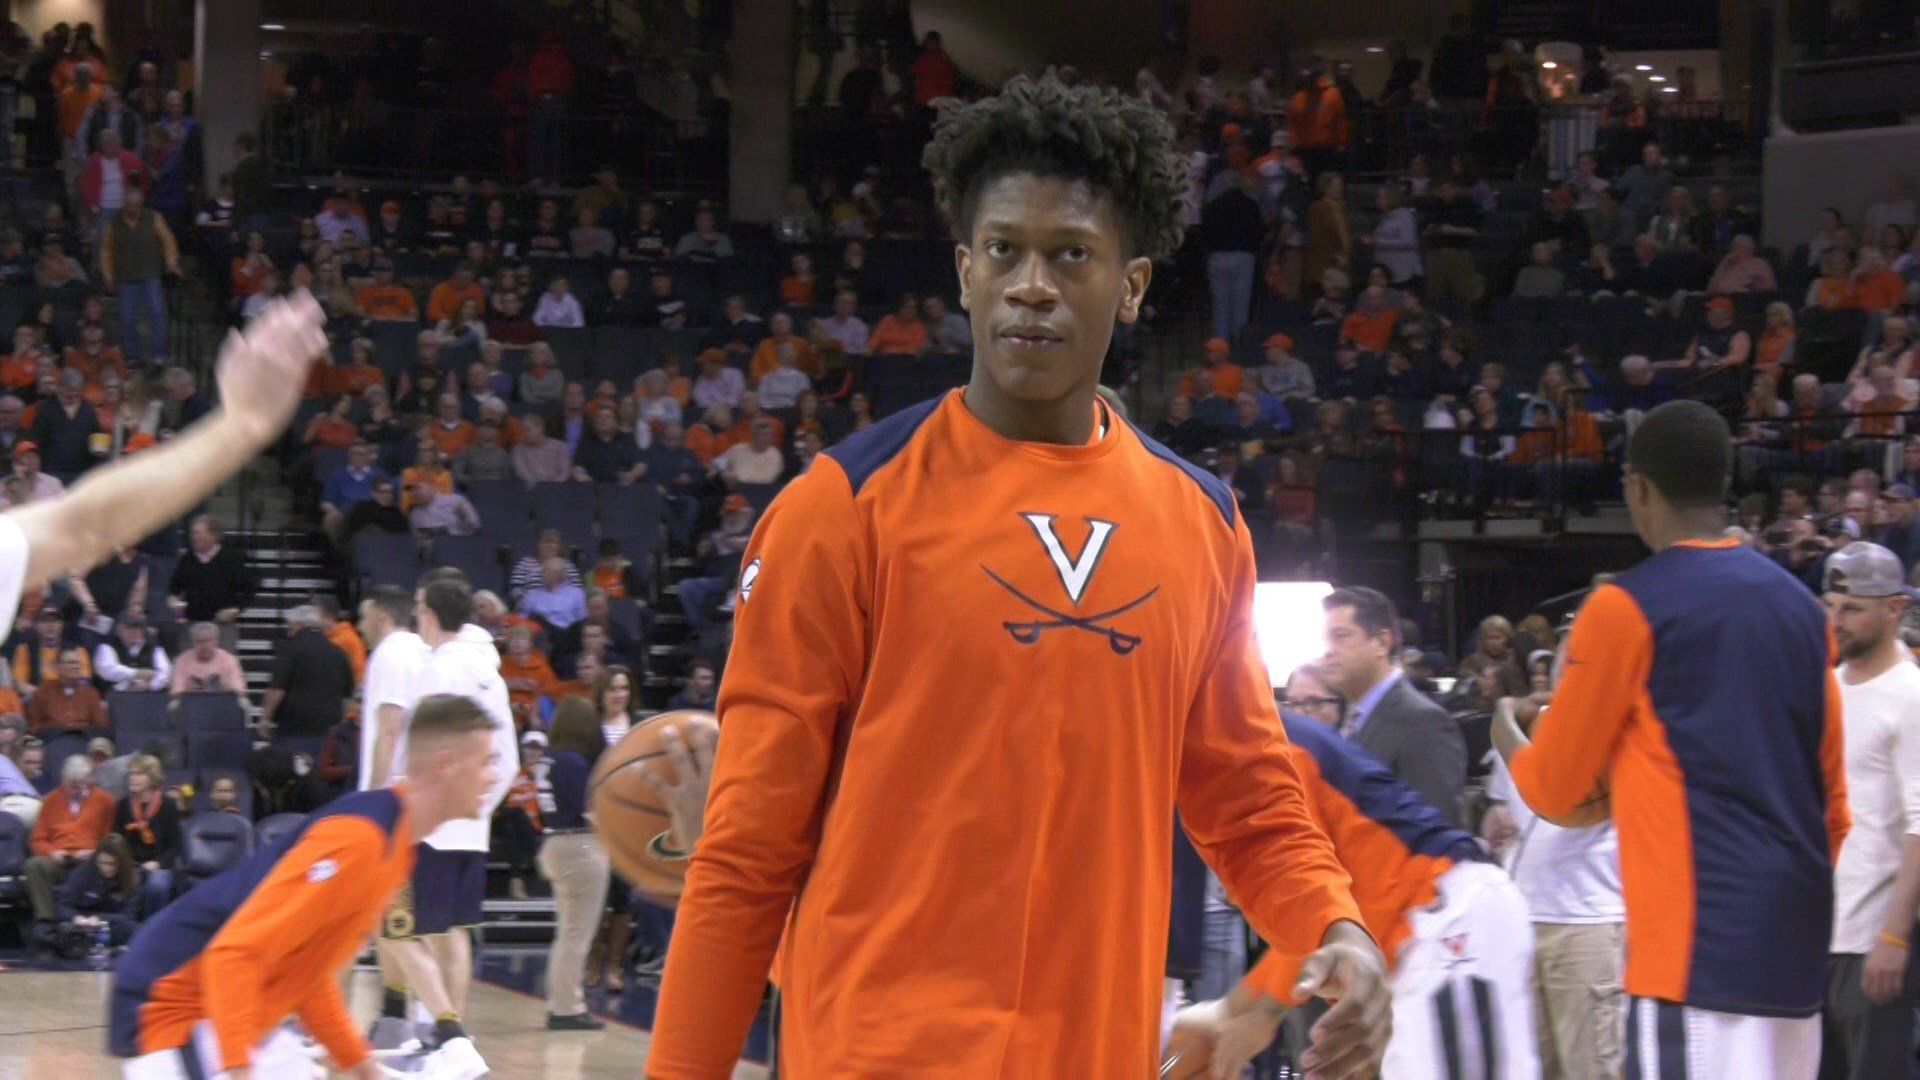 Redshirt freshman De'Andre Hunter was named Sixth Man of the Year